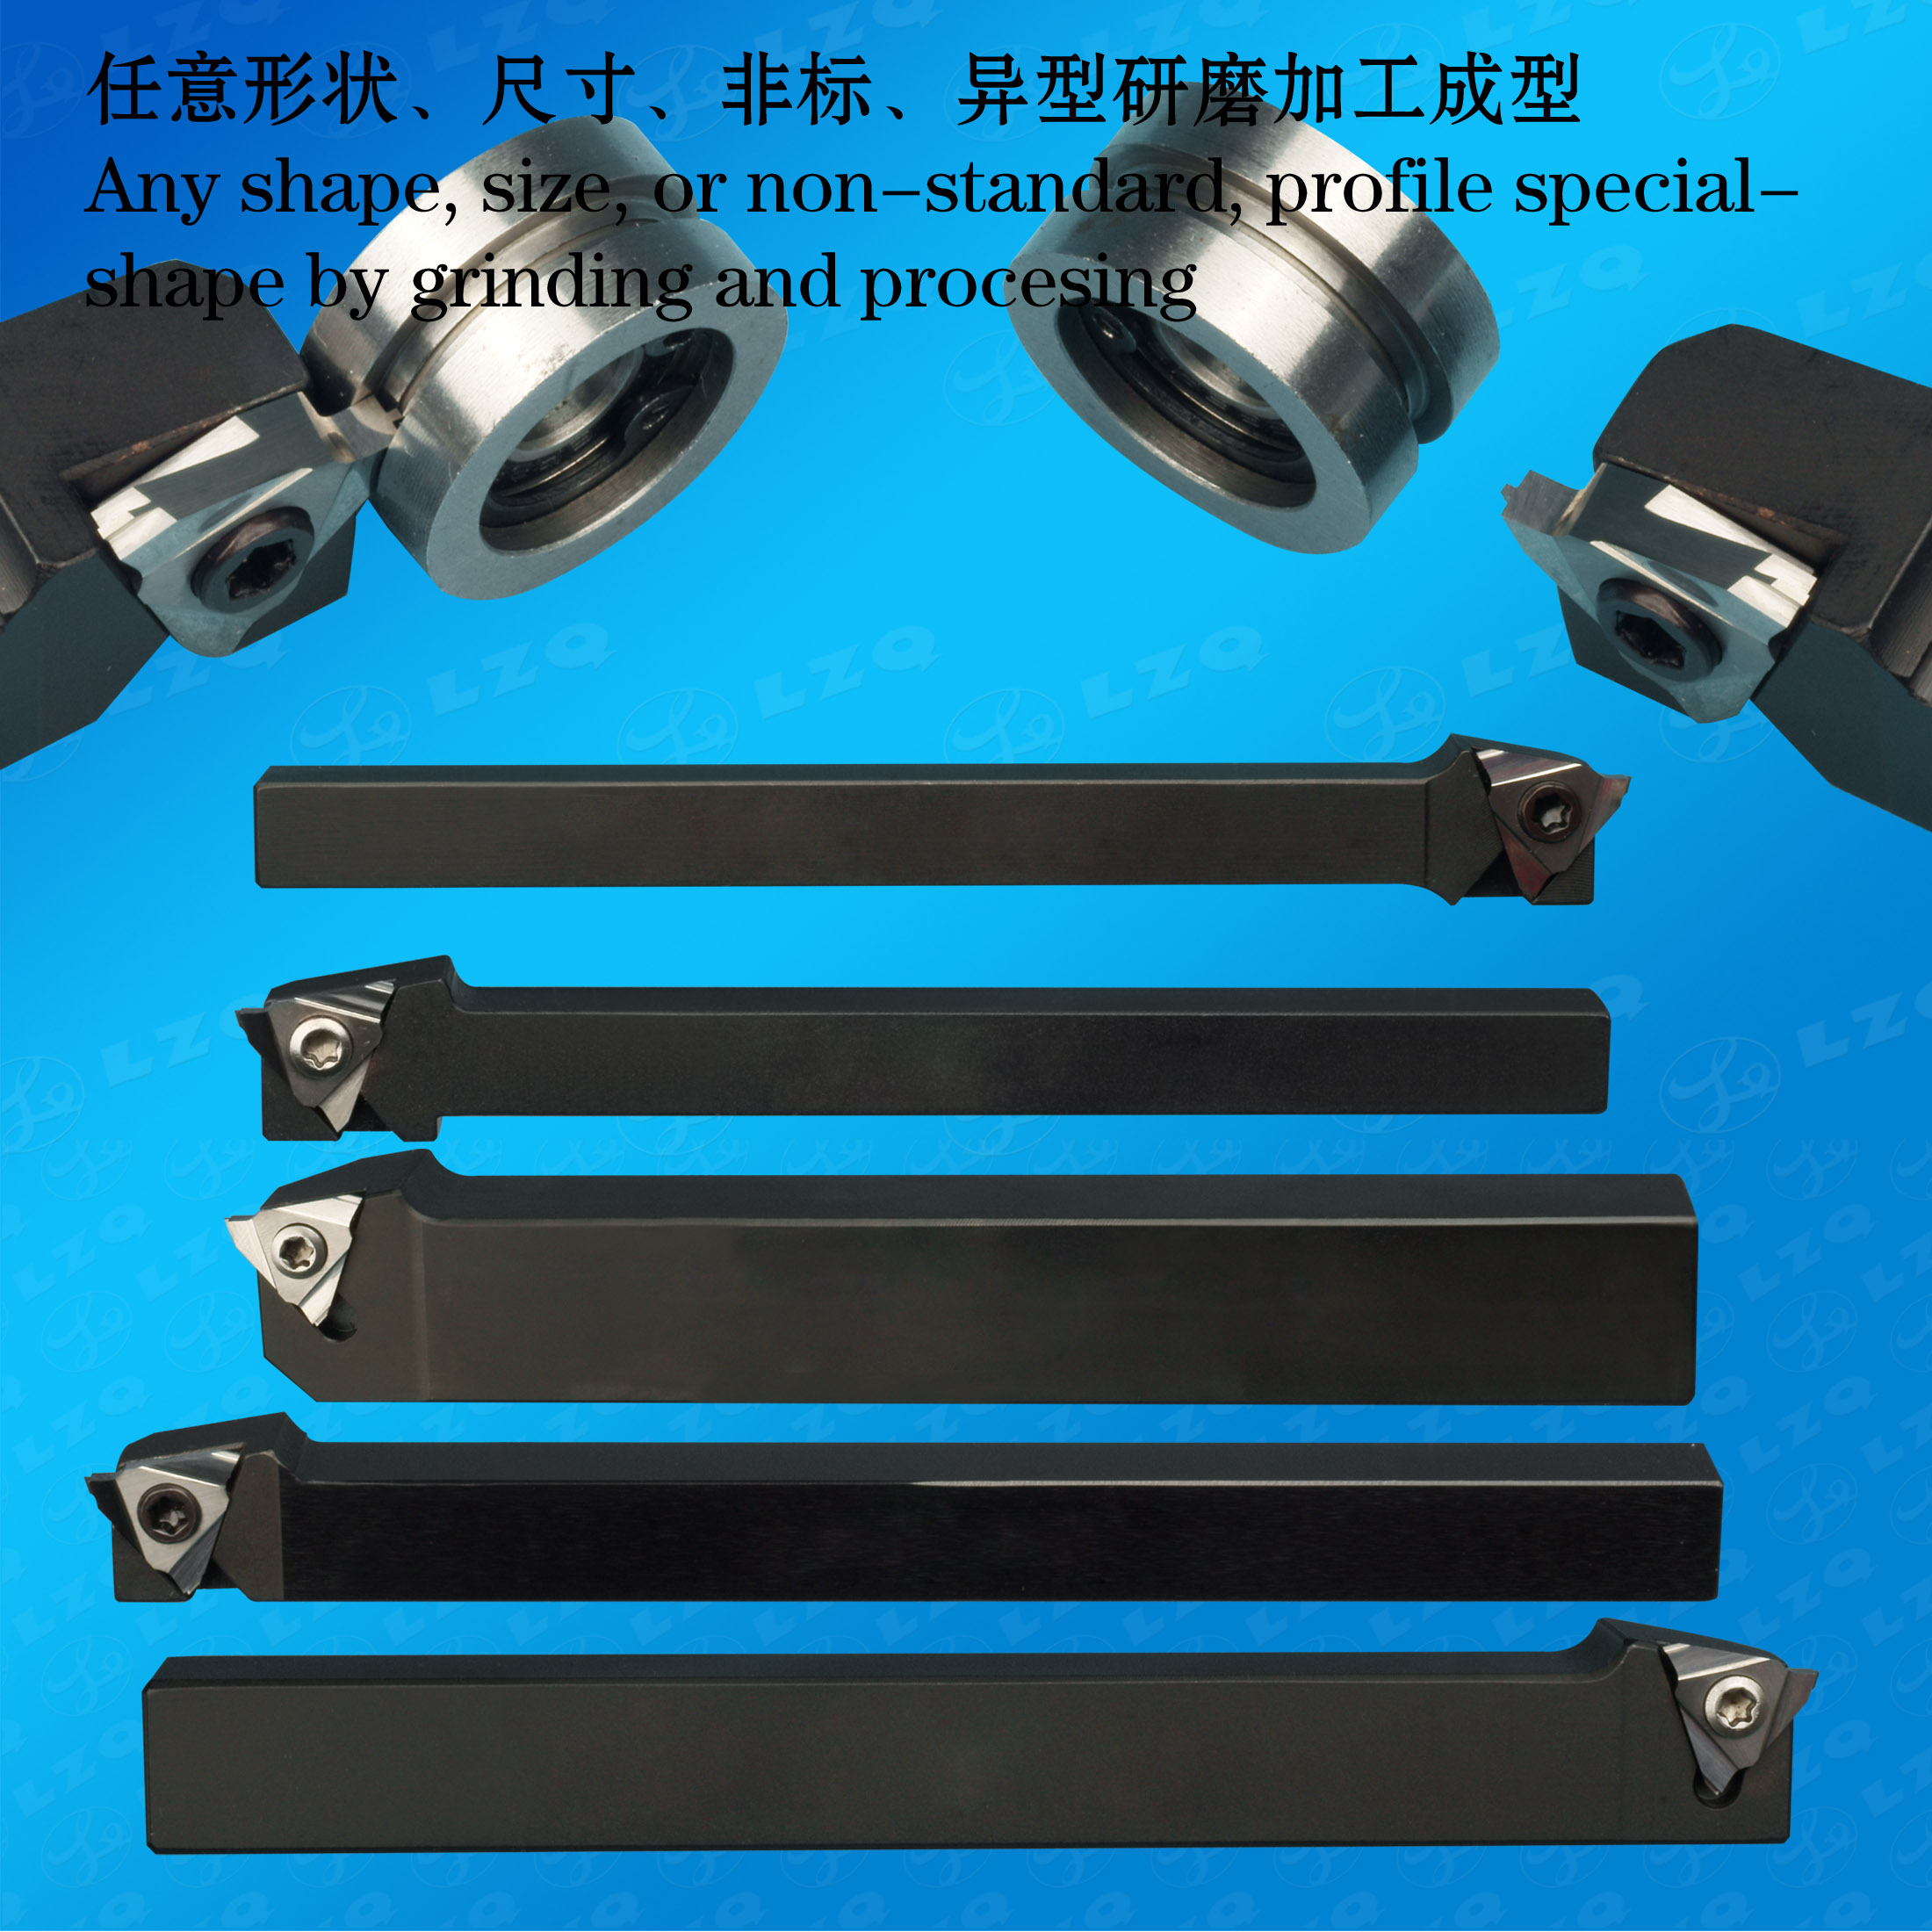 Roughing Milling Cutter For Plaster, Hard Alloy Cutter Bar, Tungsten Steel Cutter Bar